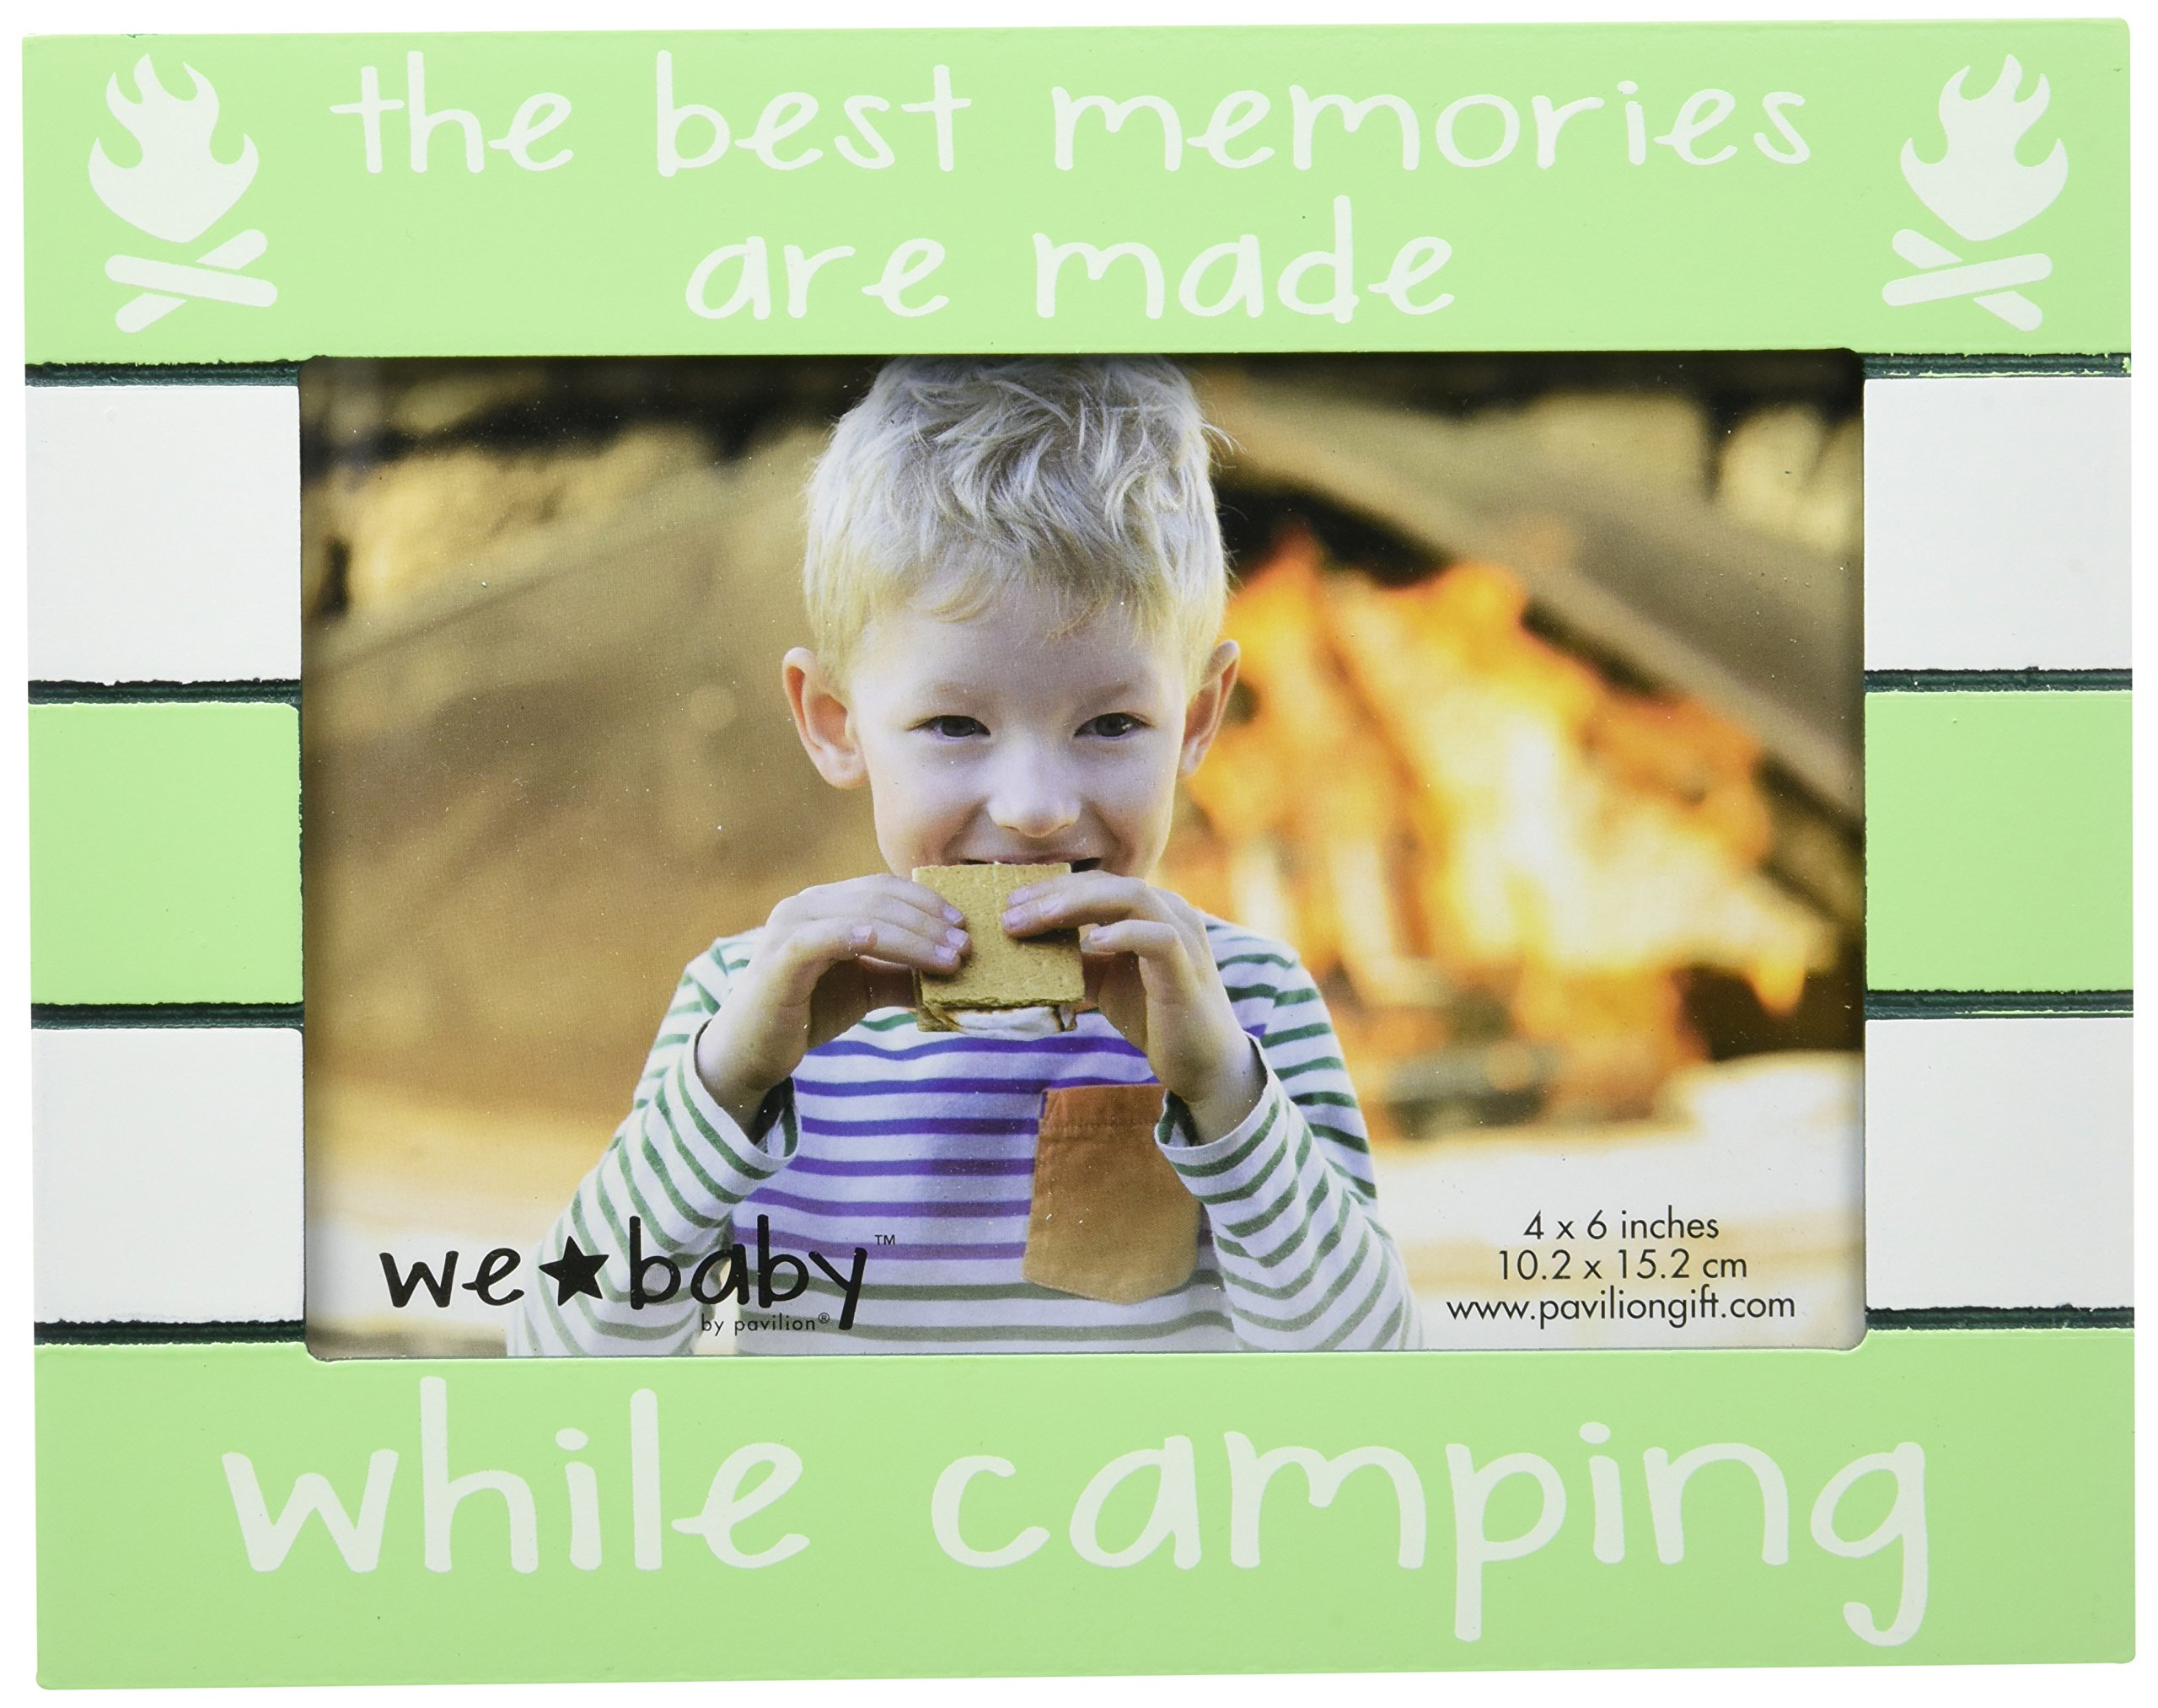 Pavilion Gift Company We Baby The Best Memories are made while camping cornice, 15,2 x 10,2 cm, Gre